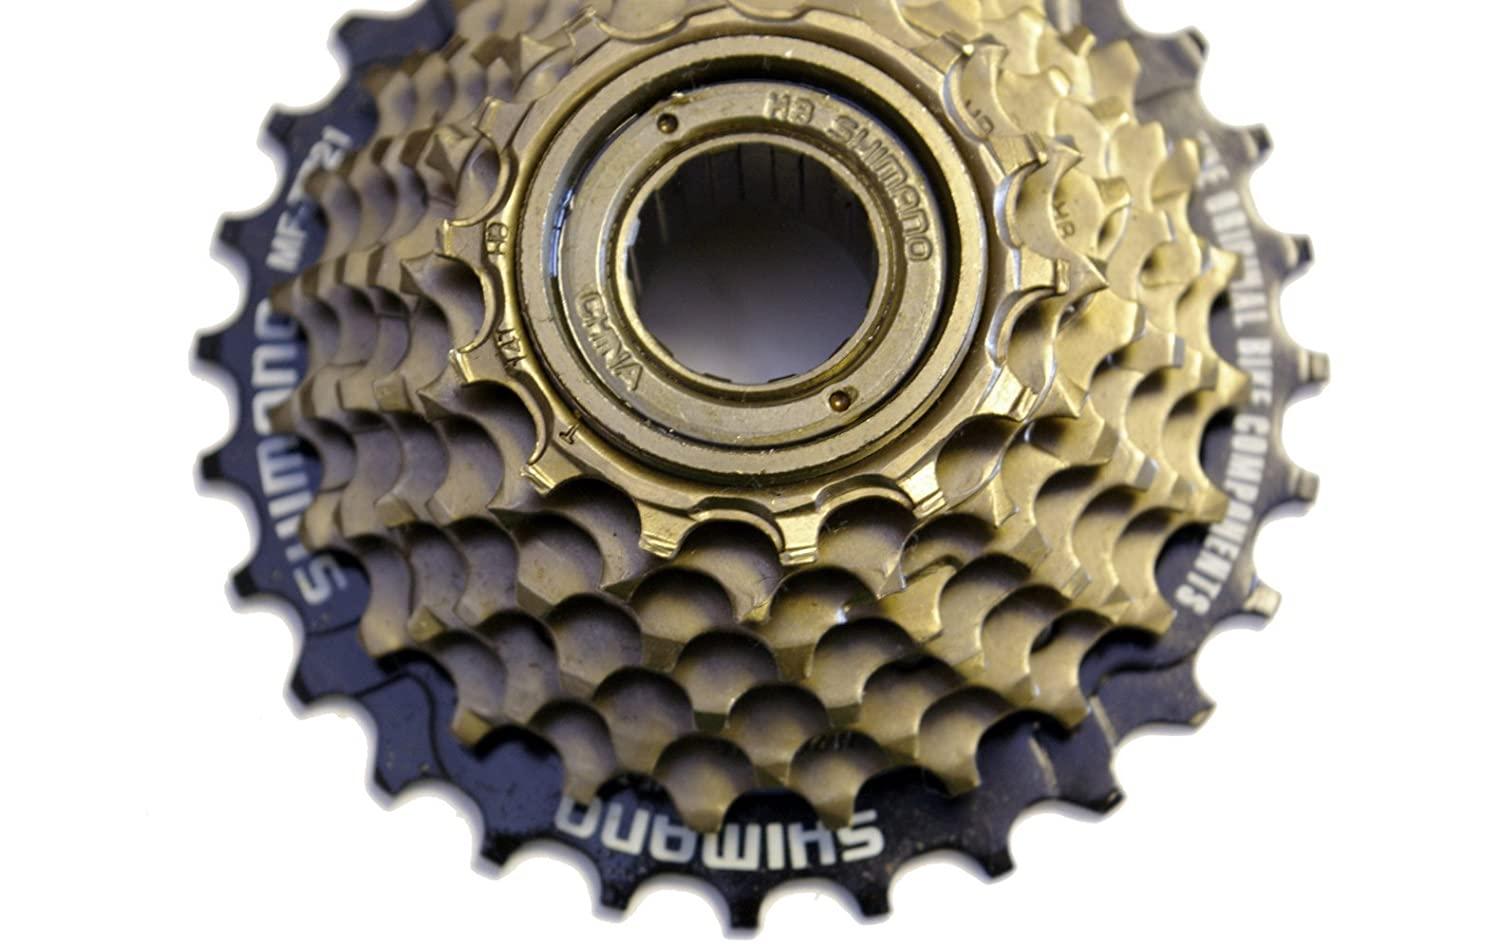 Qualified Shimano Cs-5600 10sp Cassette 11-23 A Wide Selection Of Colours And Designs Bicycle Components & Parts Cycling